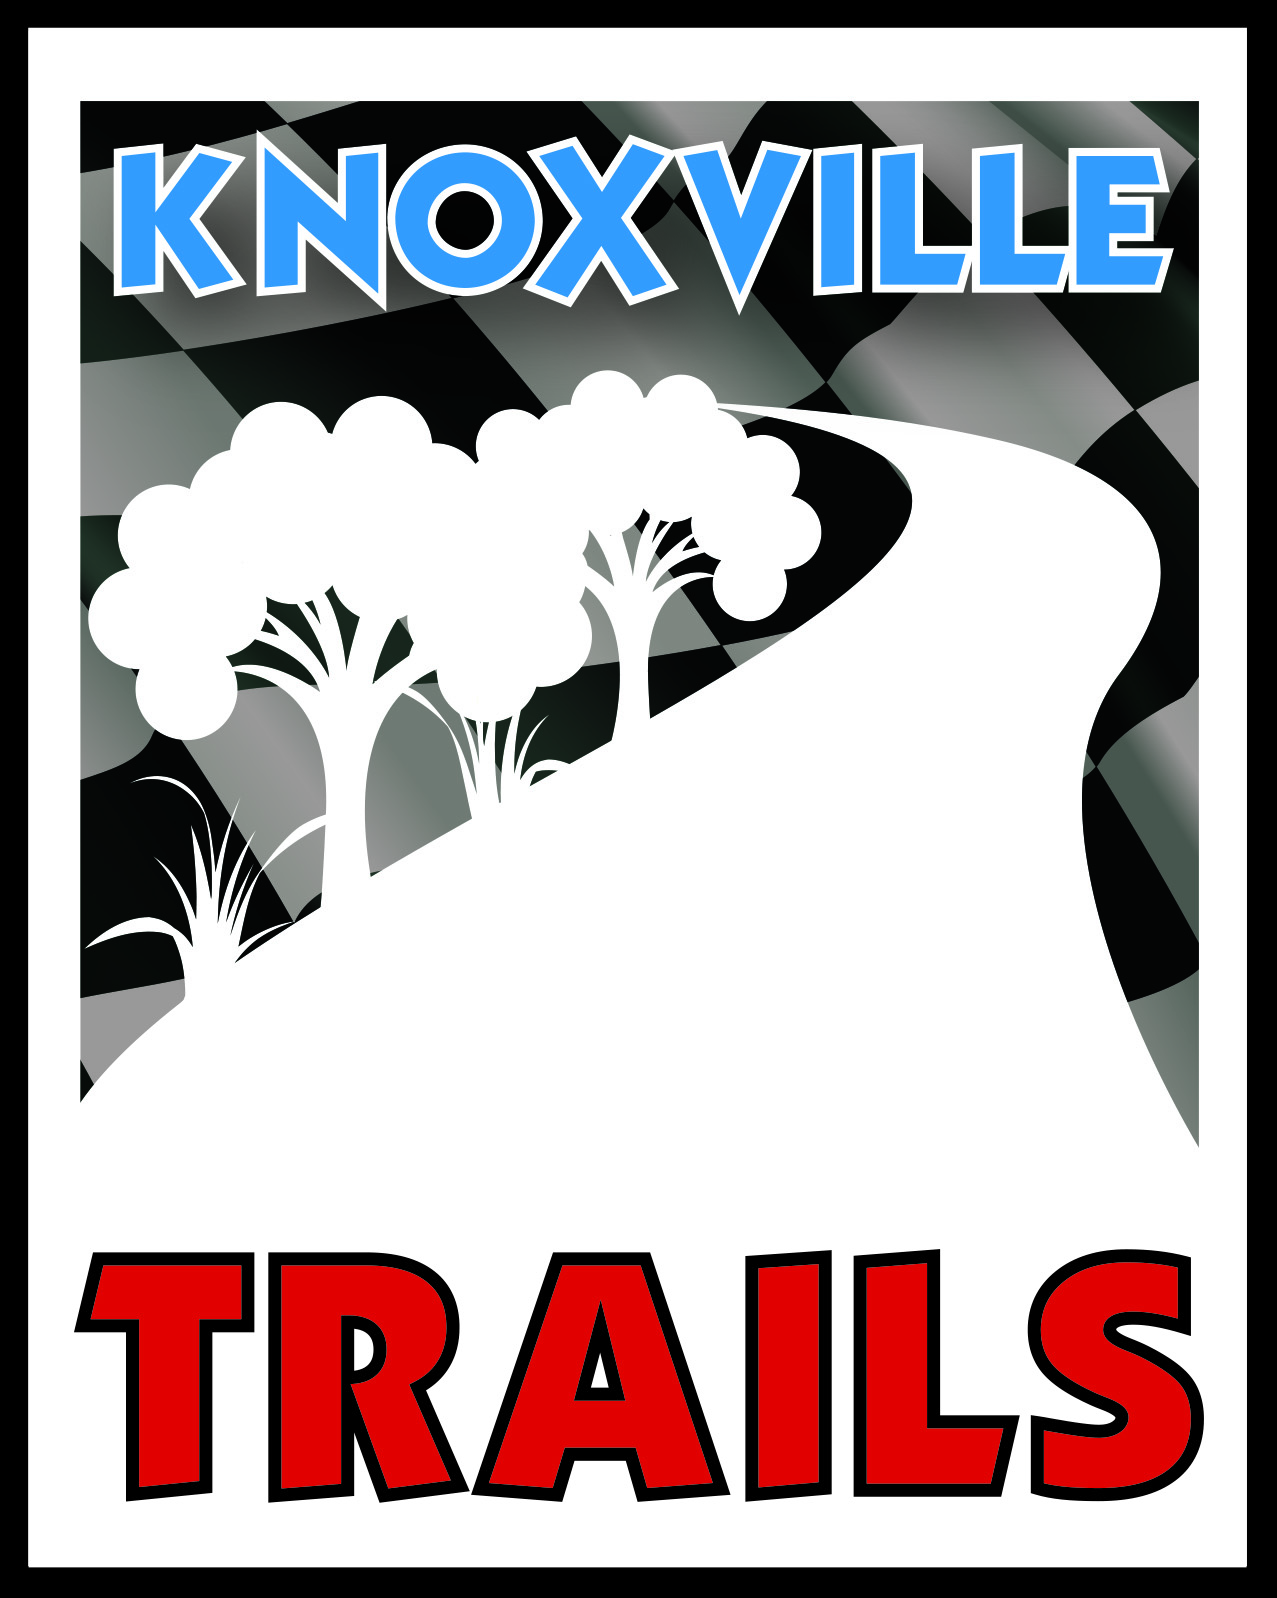 Knoxville Trails